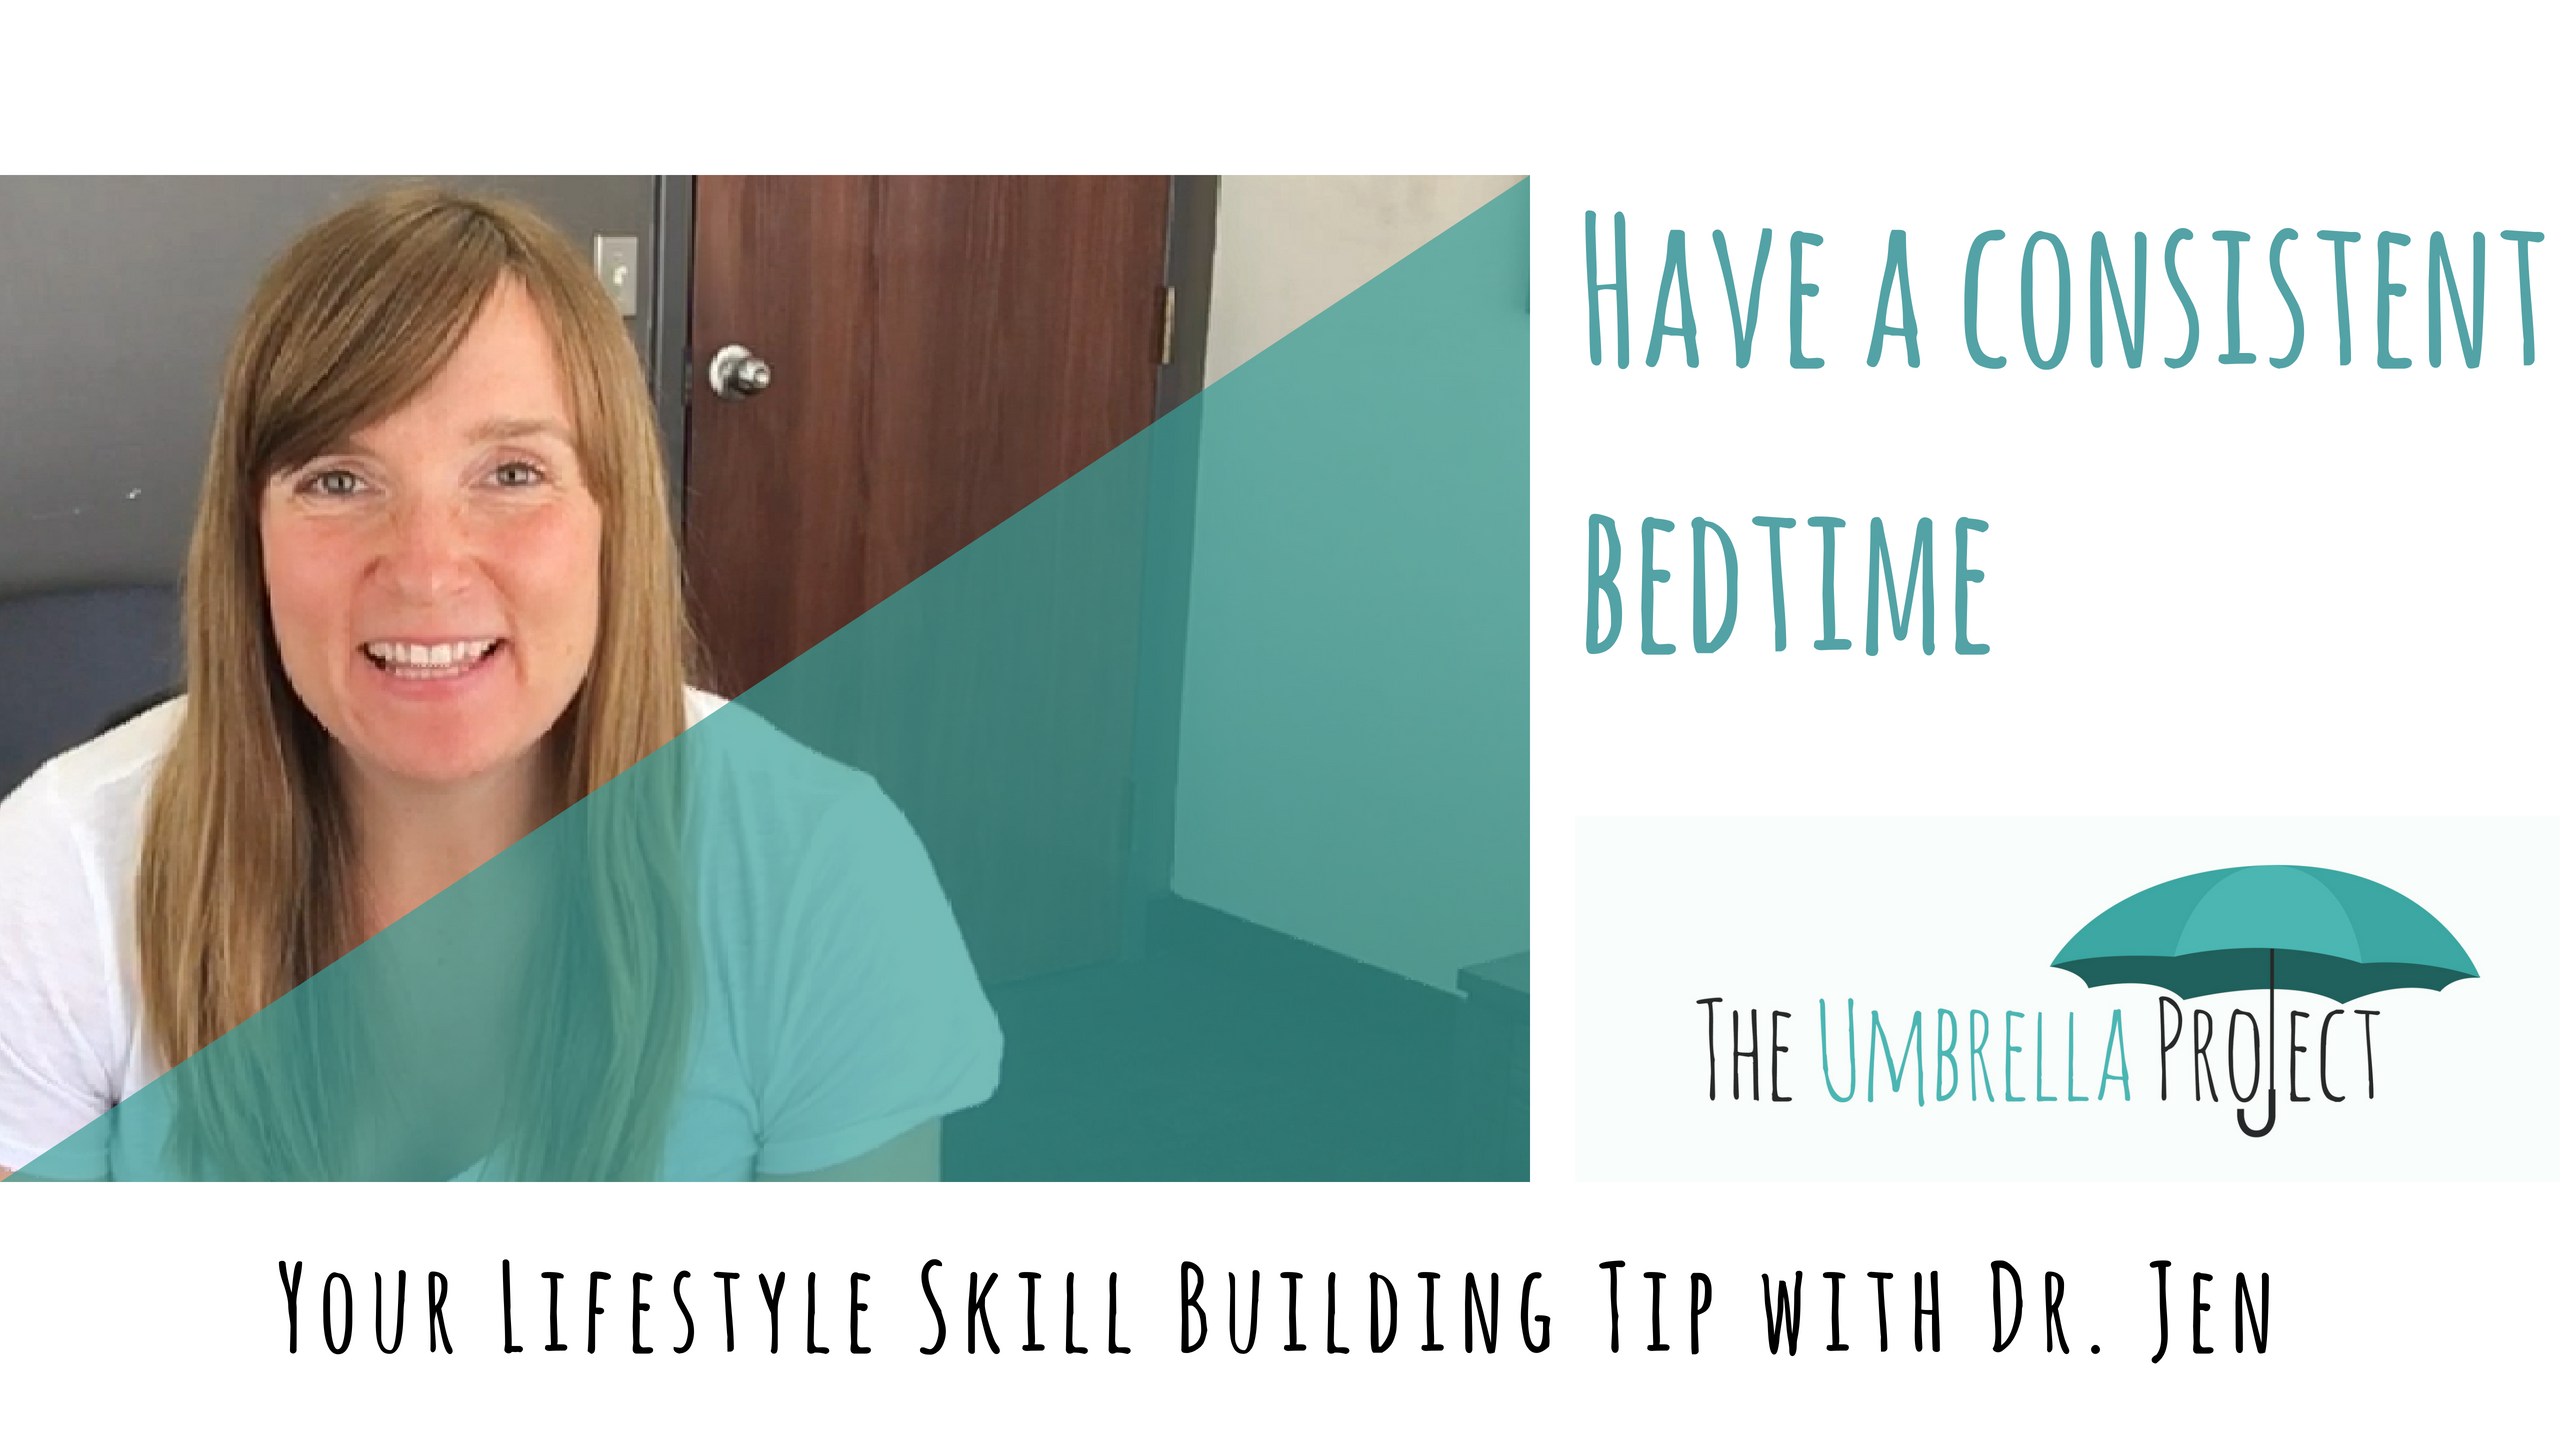 Have a Consistent Bedtime: Your Lifestyle Skill Building Tip with Dr. Jen